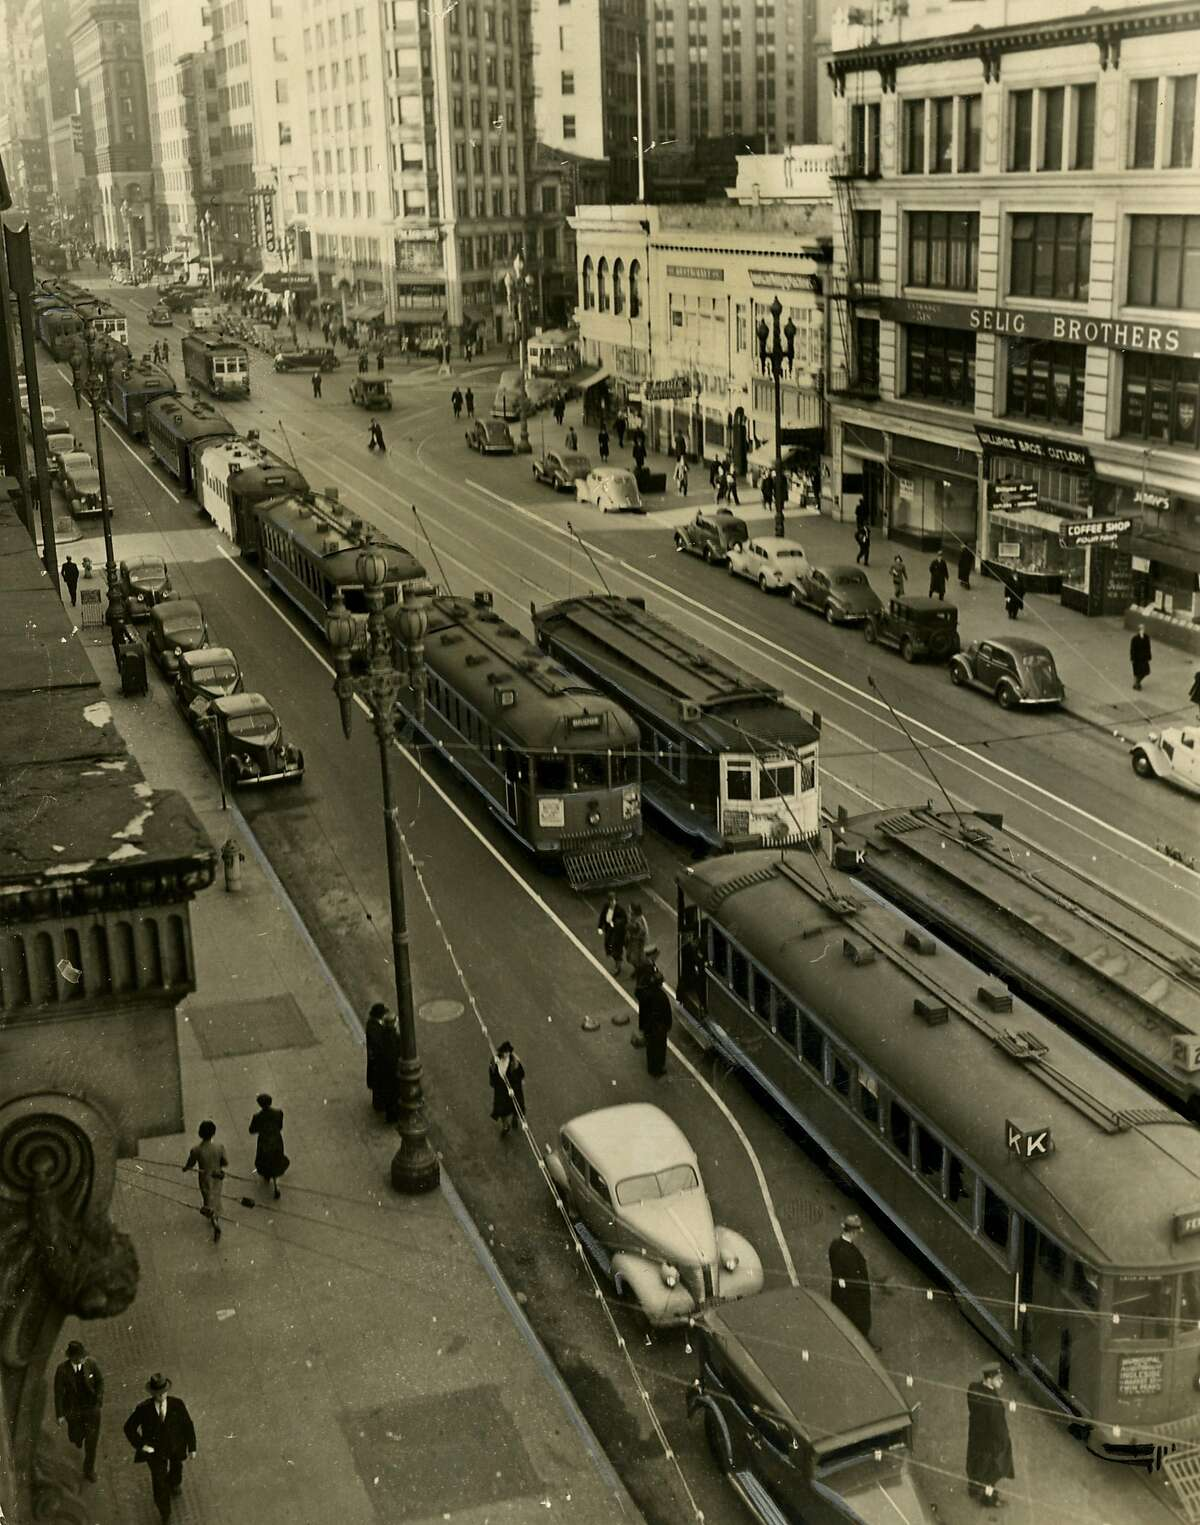 """From the back of the photo: """"When the flood of commuters arrived at the Bay Bridge rail terminal yesterday morning, the San Francisco street car service bogged down. Street cars were forced to inch along First, Fremont and Market Streets. Officials declare the traffic problems will be solved in a few days."""" January 17, 1939."""